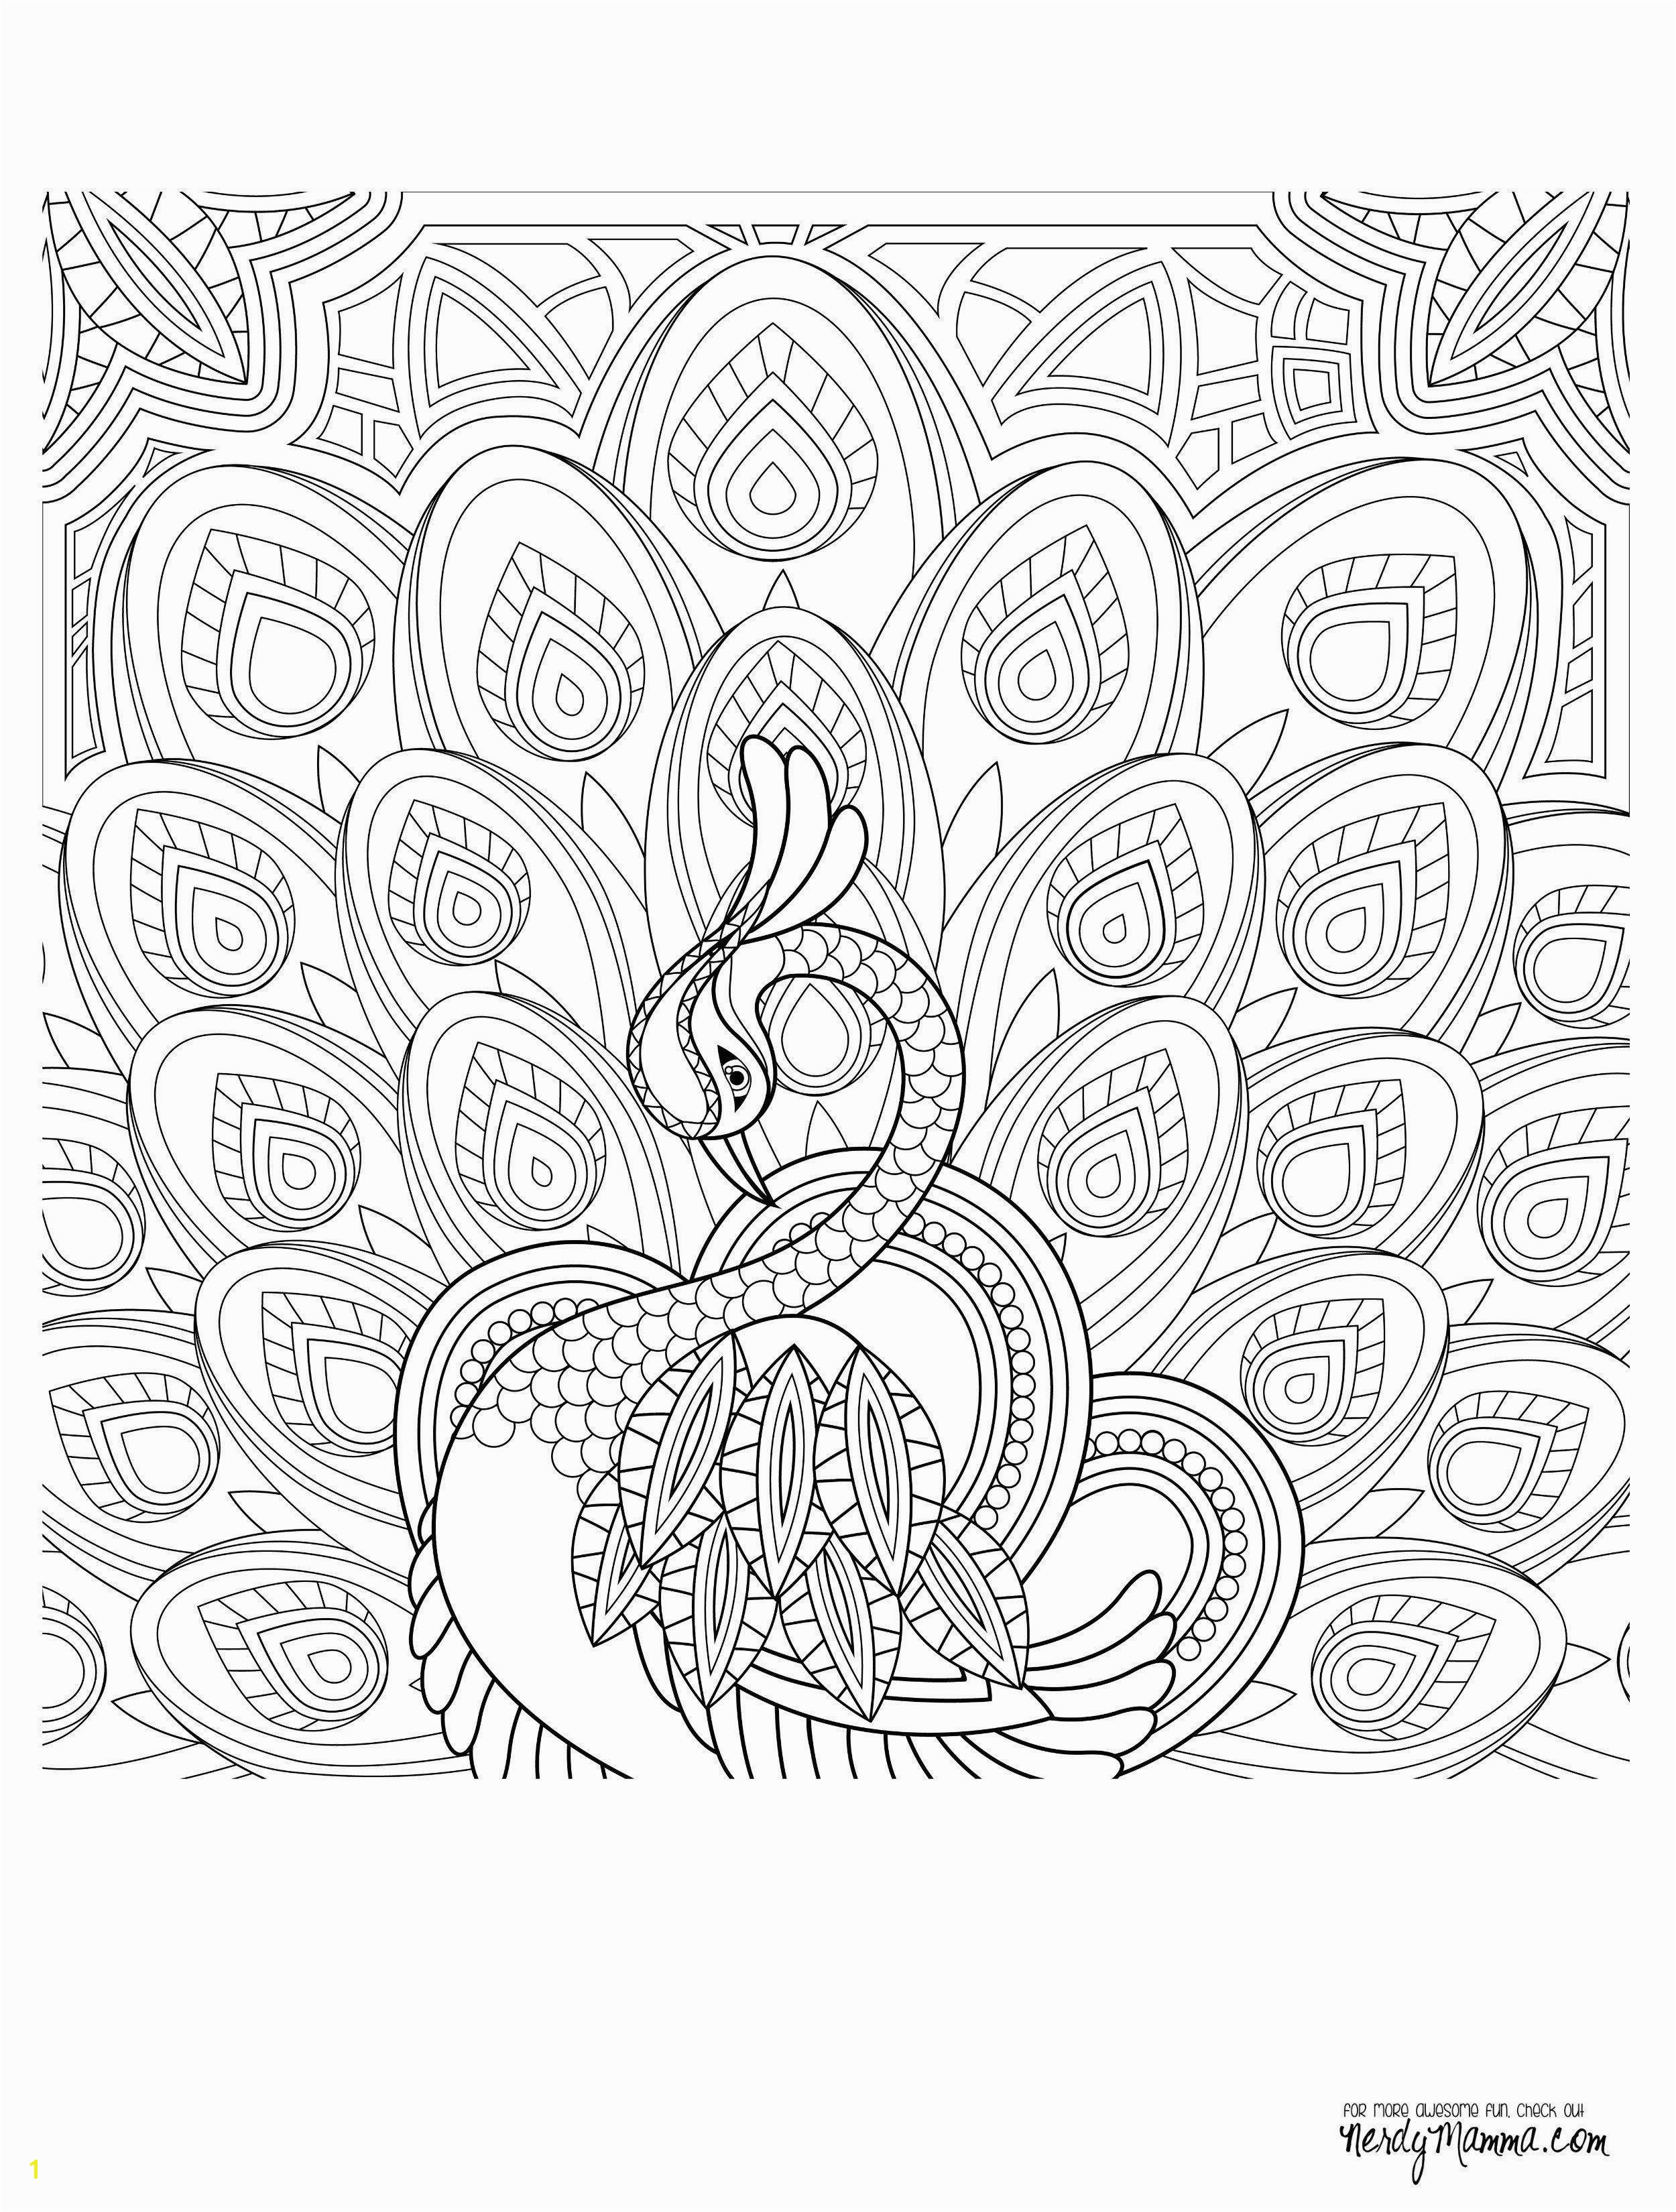 Crayola Halloween Coloring Pages Fresh Cool Coloring Page Unique Witch Coloring Pages New Crayola Pages 0d